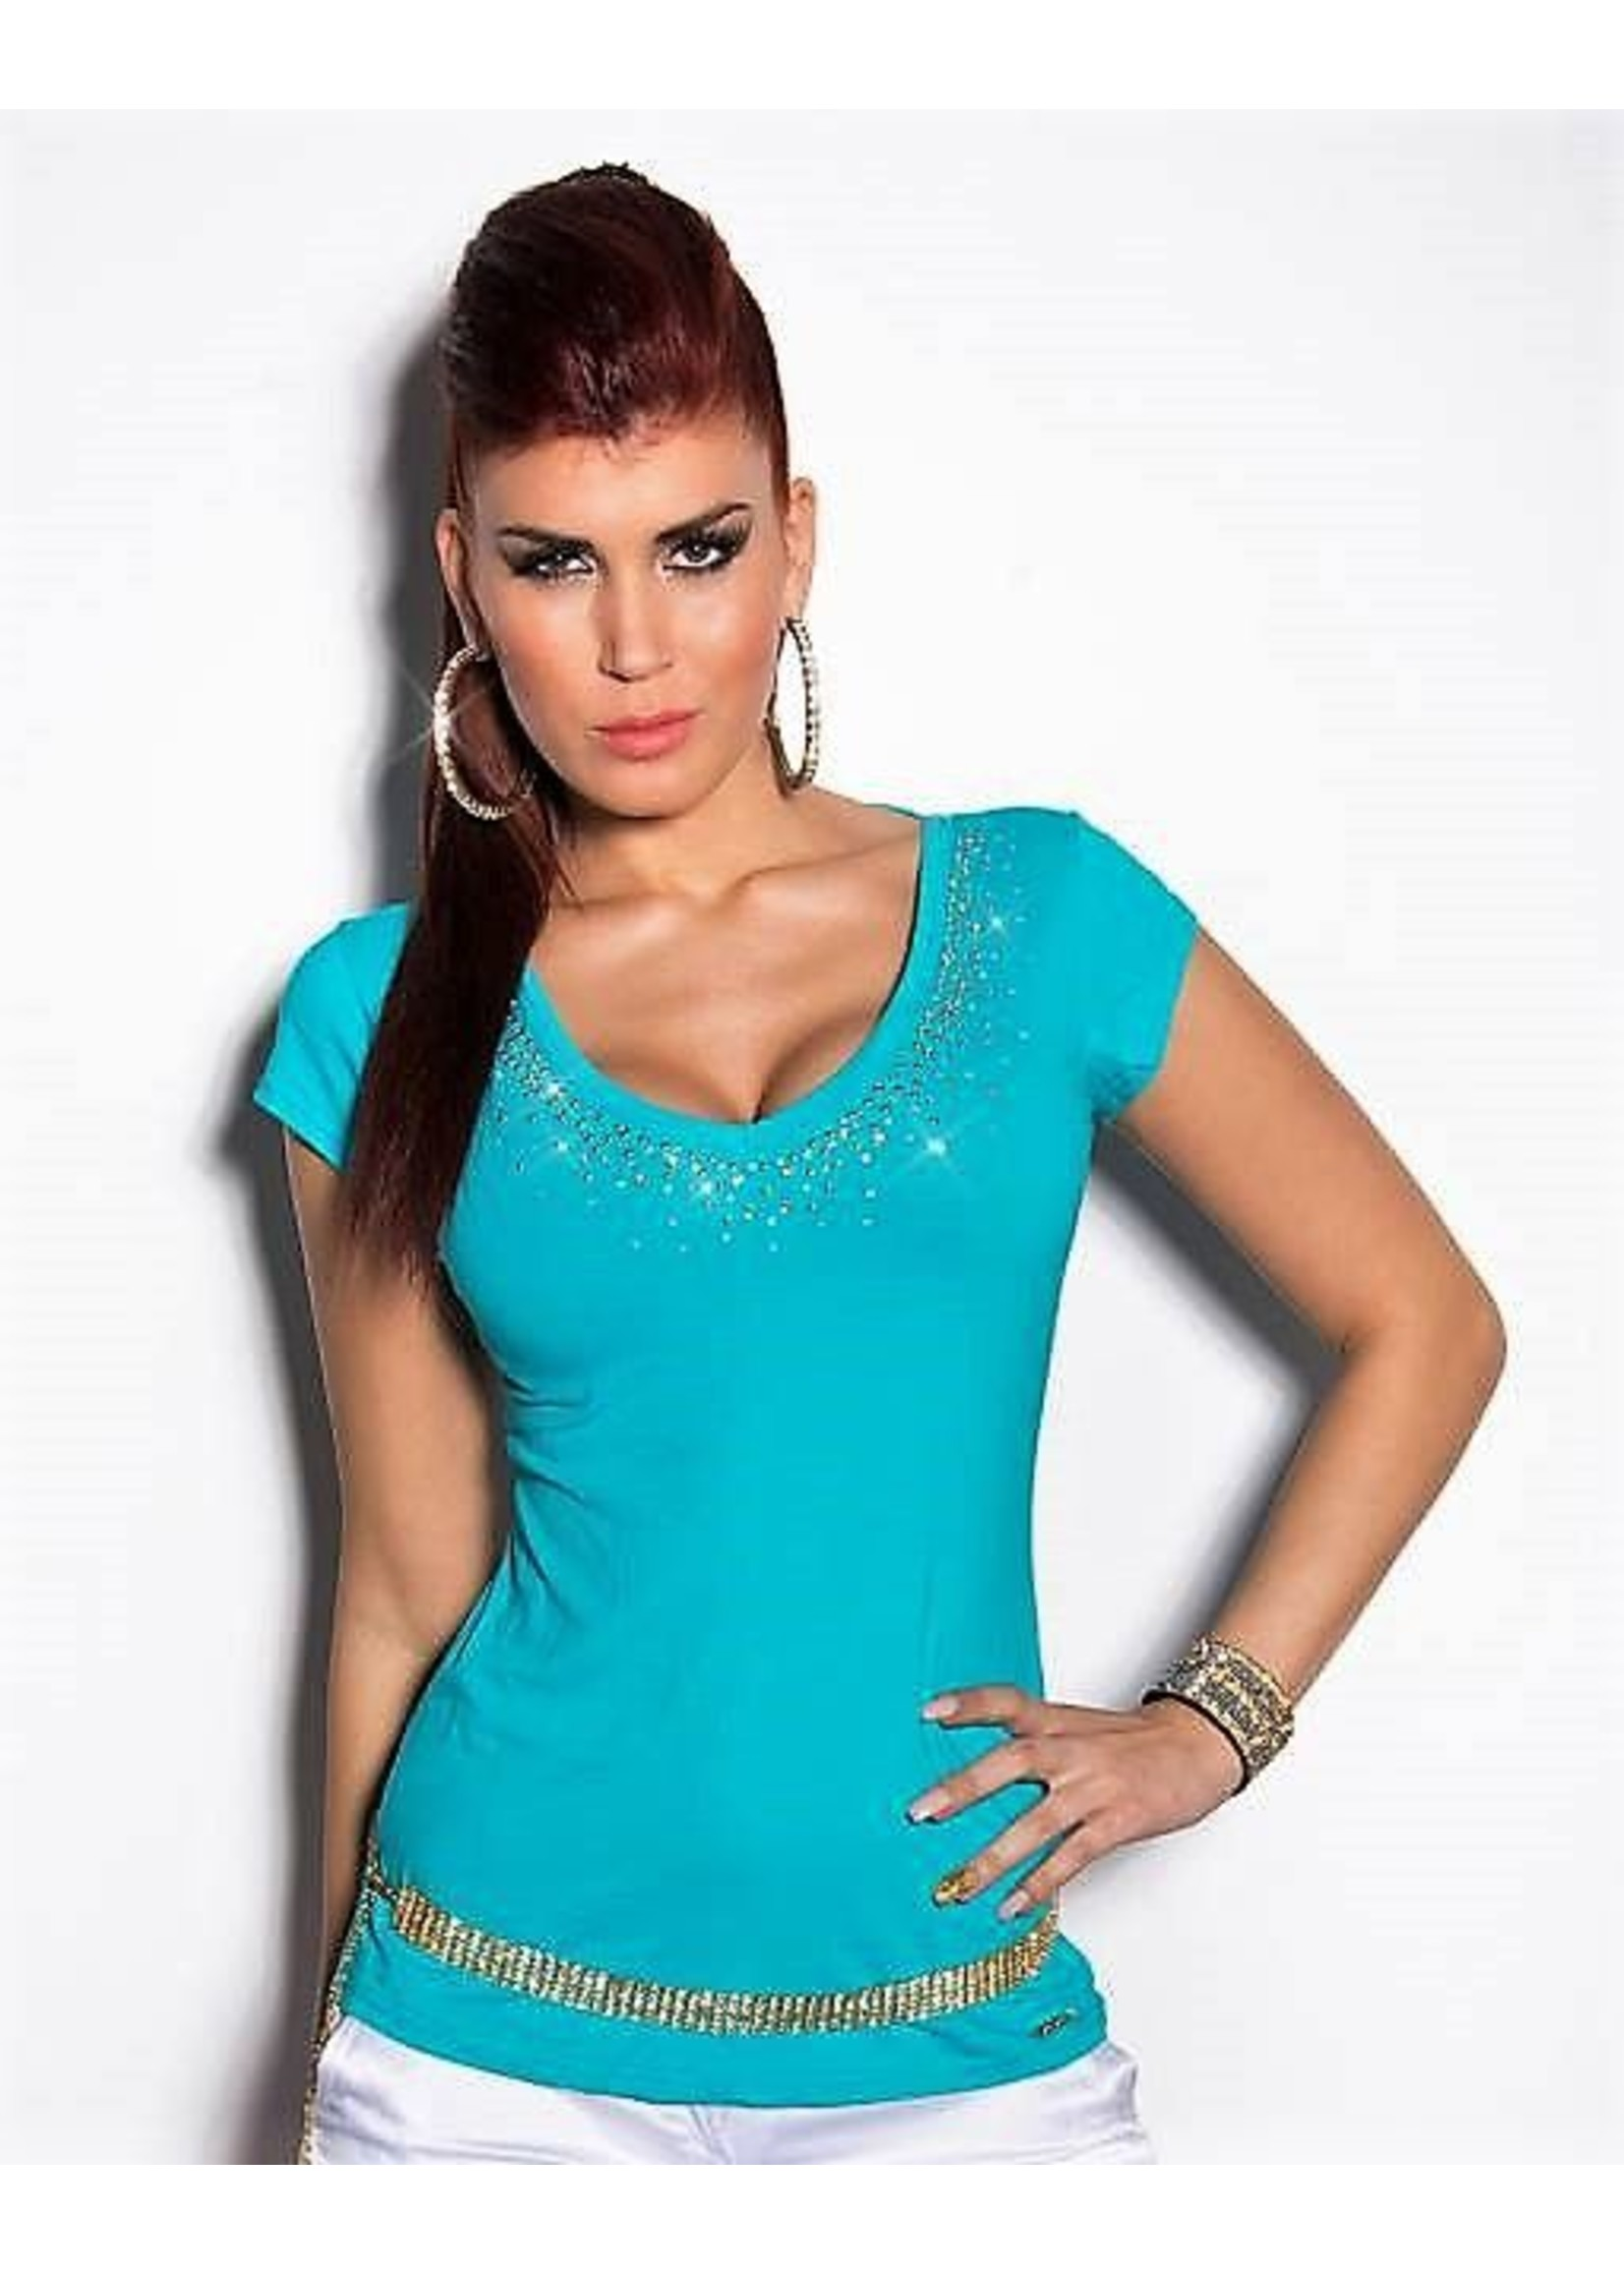 IN-STYLE FASHION TURQUOISE SHIRTJE MET STUDS & STEENTJES